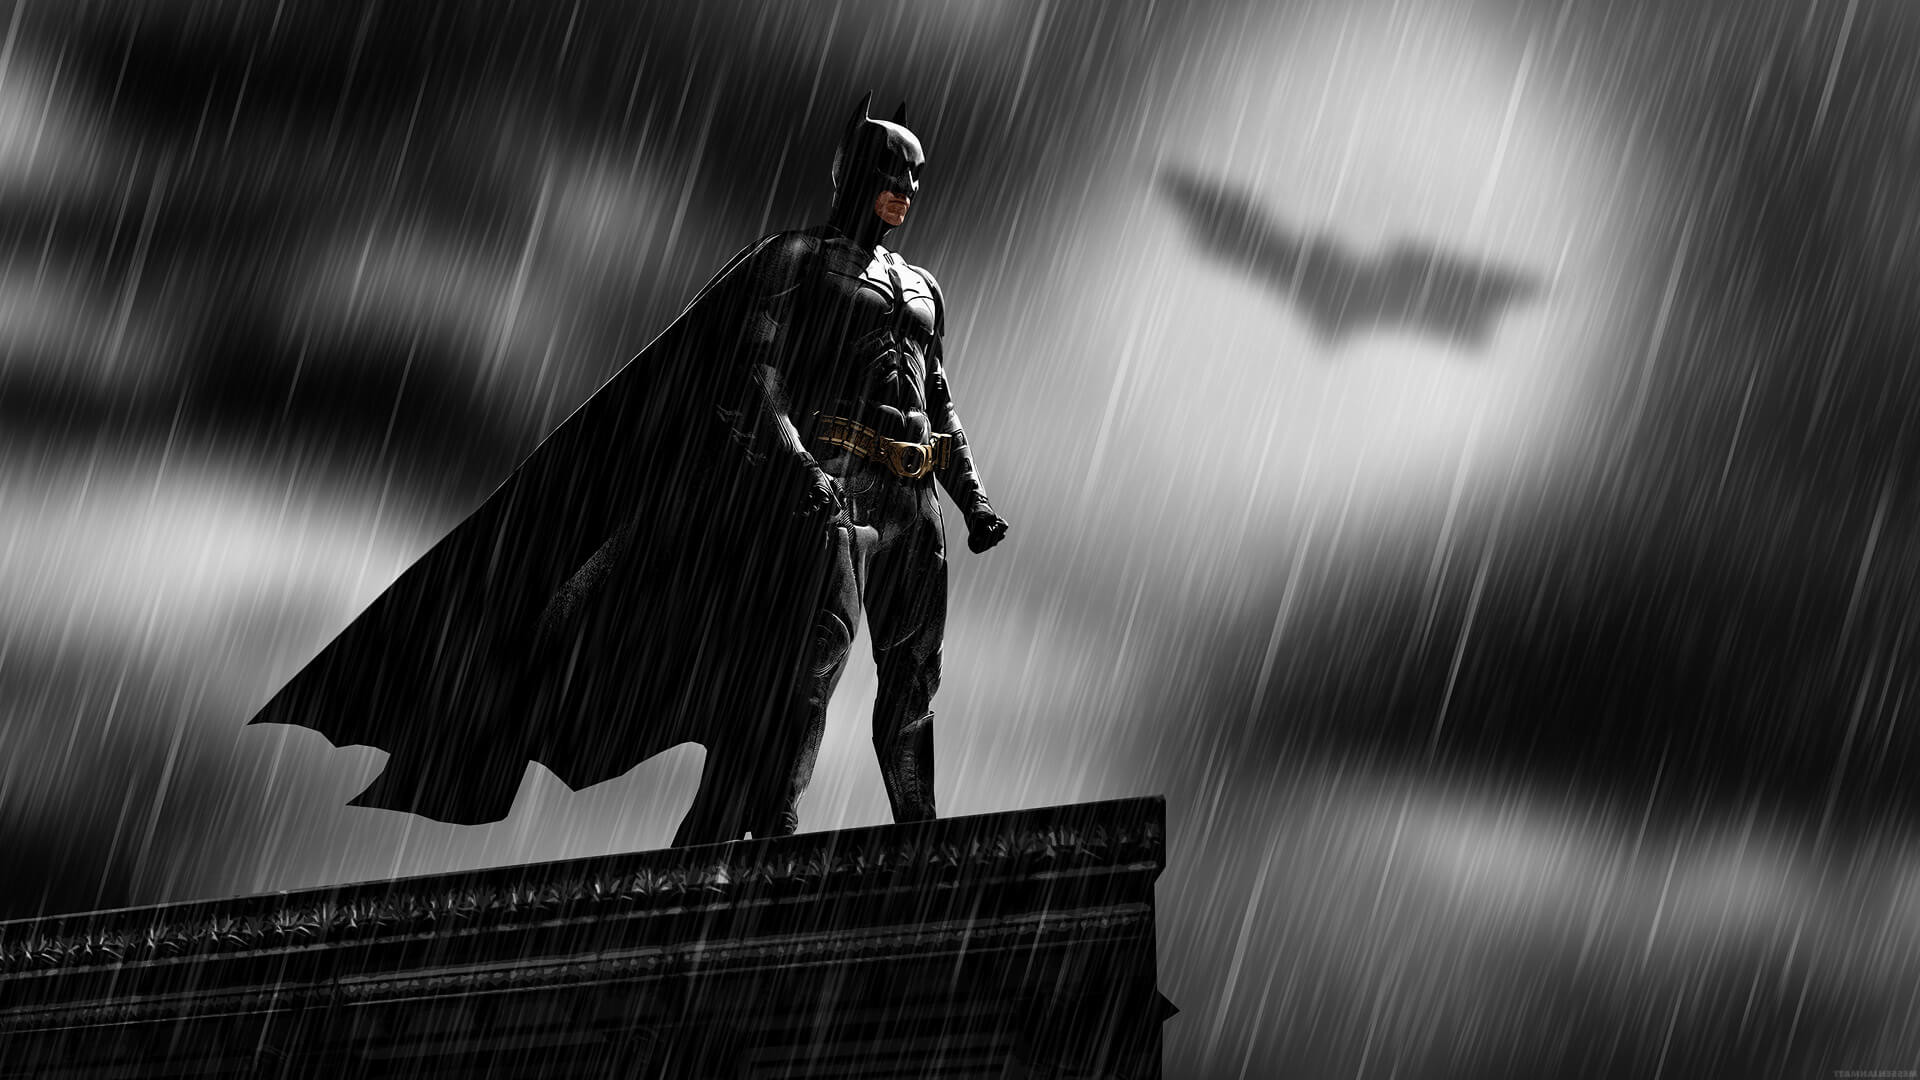 1920x1080 Batman Wallpaper Hd 1080p Download